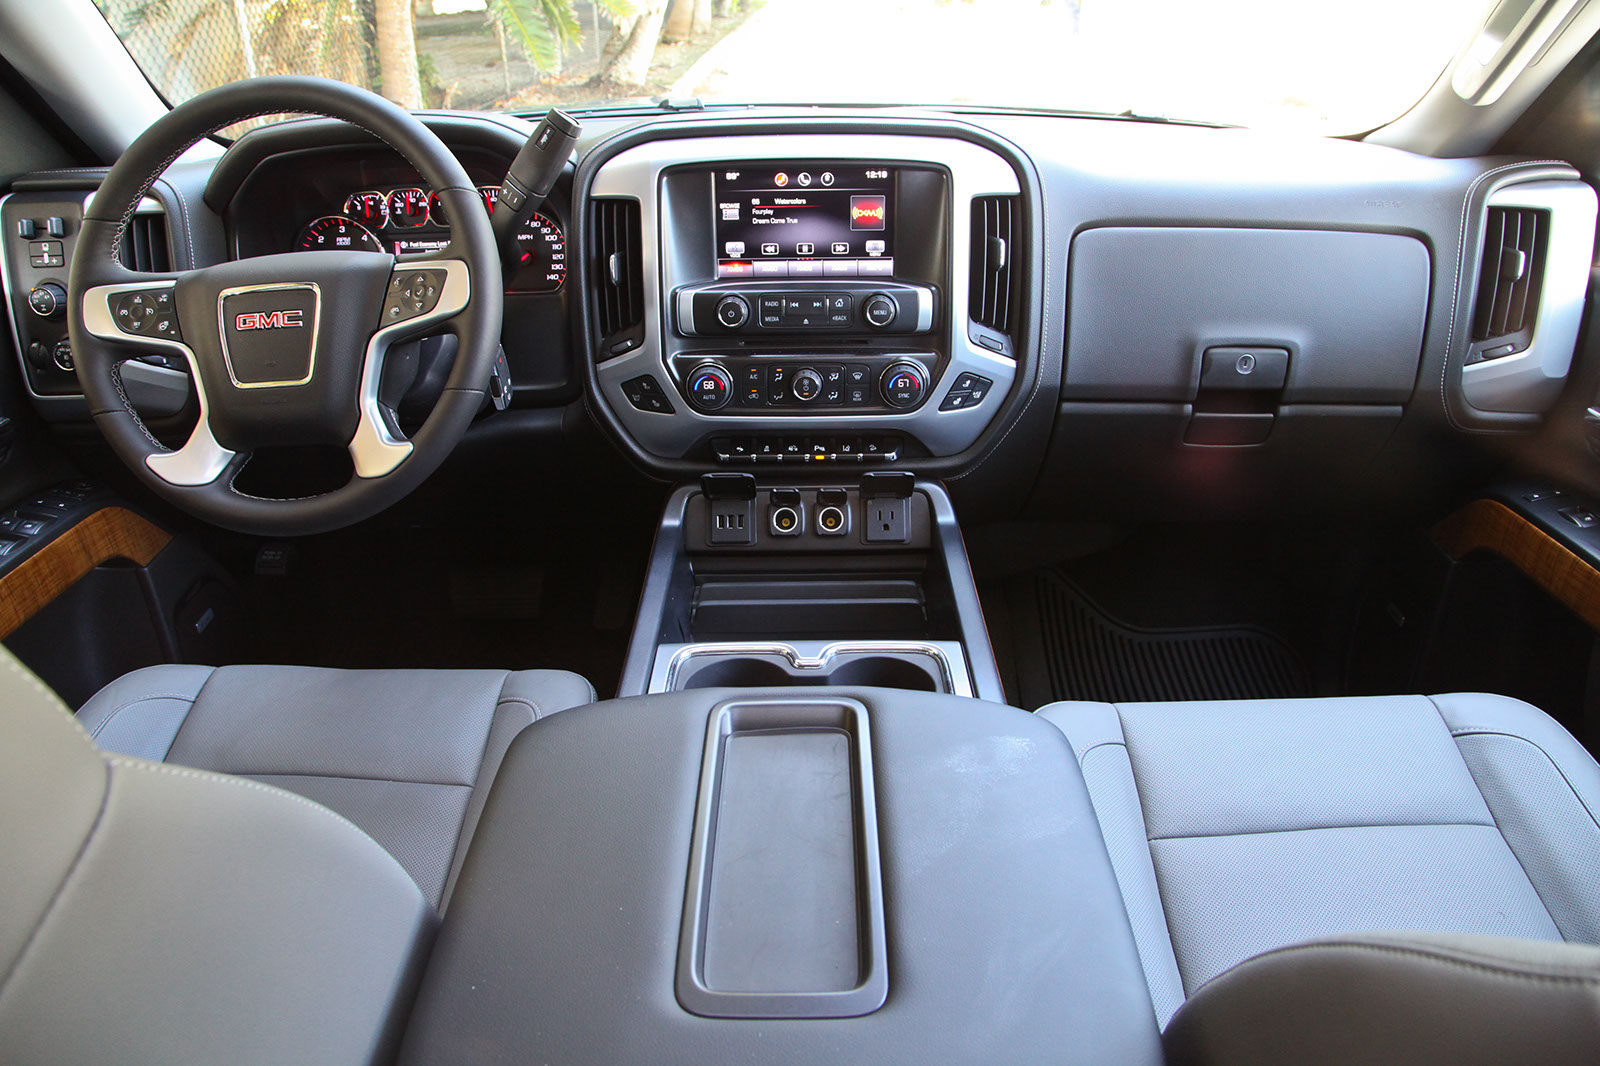 Captivating 2014 GMC Sierra 1500 | Top Speed. » Design